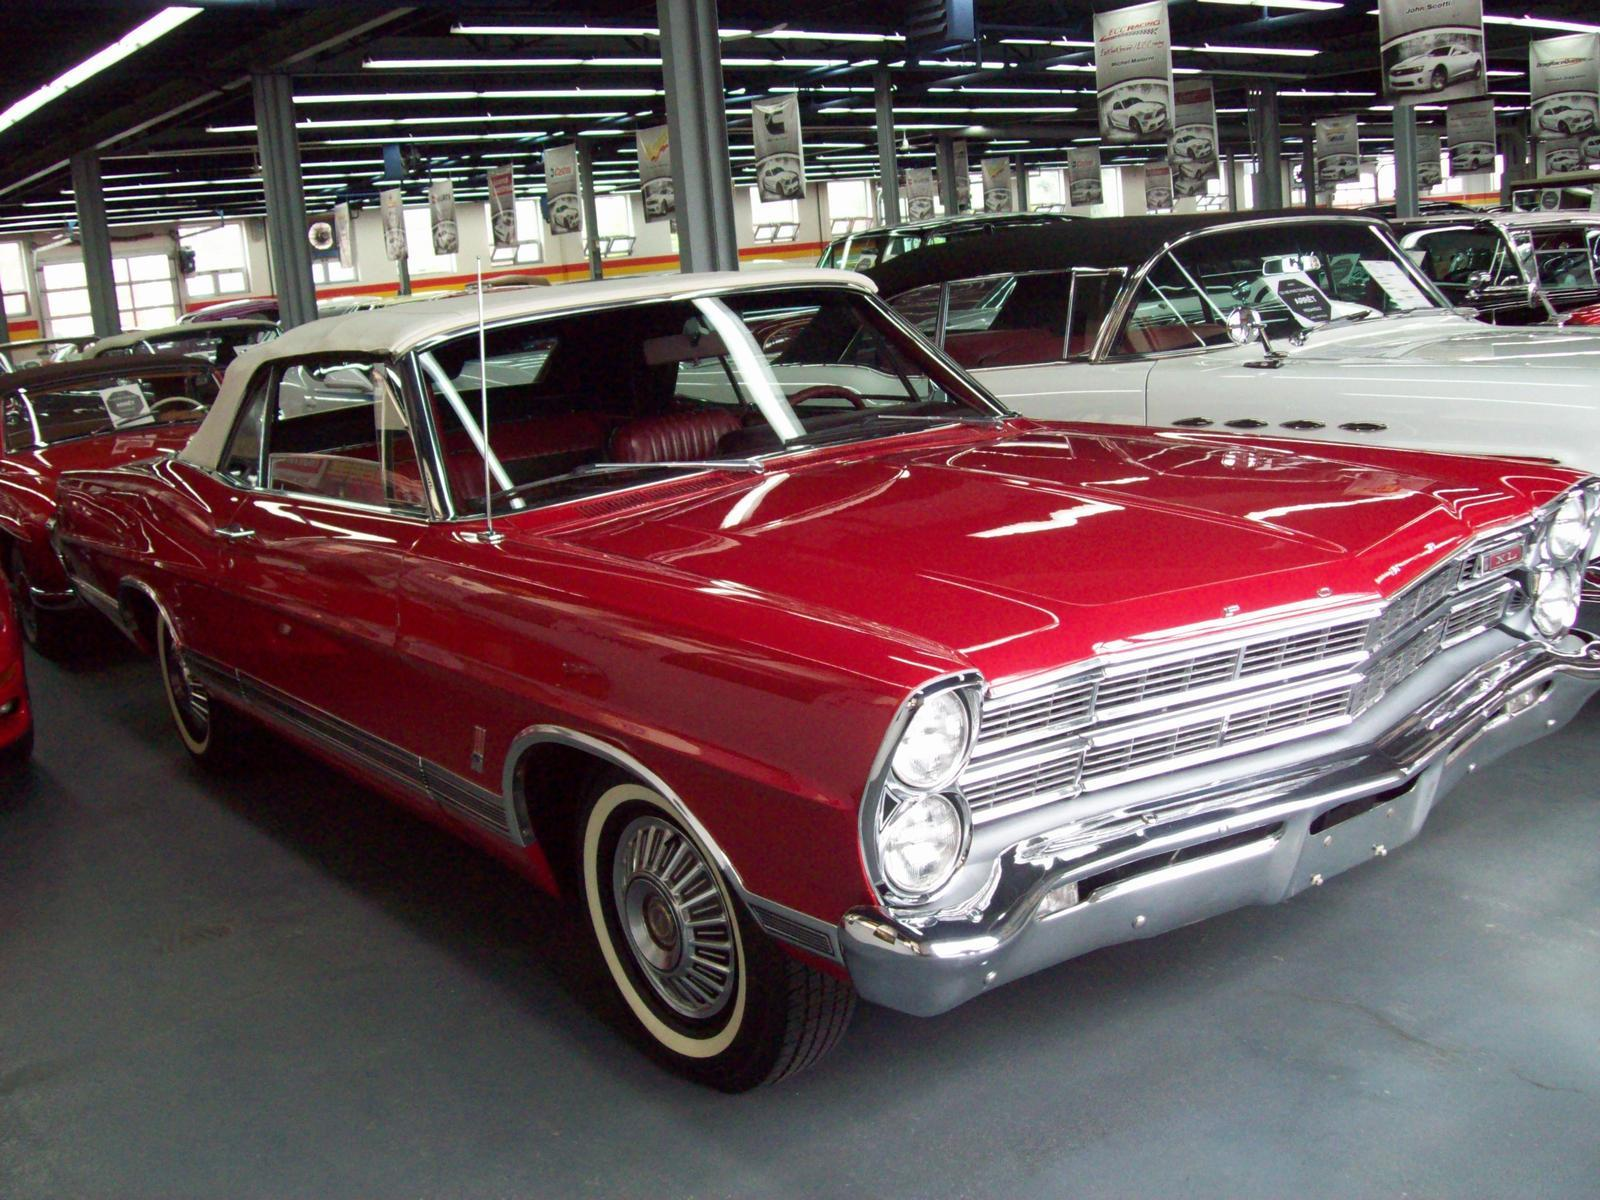 used 1967 ford galaxie 500 xl for sale in saint l onard john scotti classic cars h1r 2y7. Black Bedroom Furniture Sets. Home Design Ideas